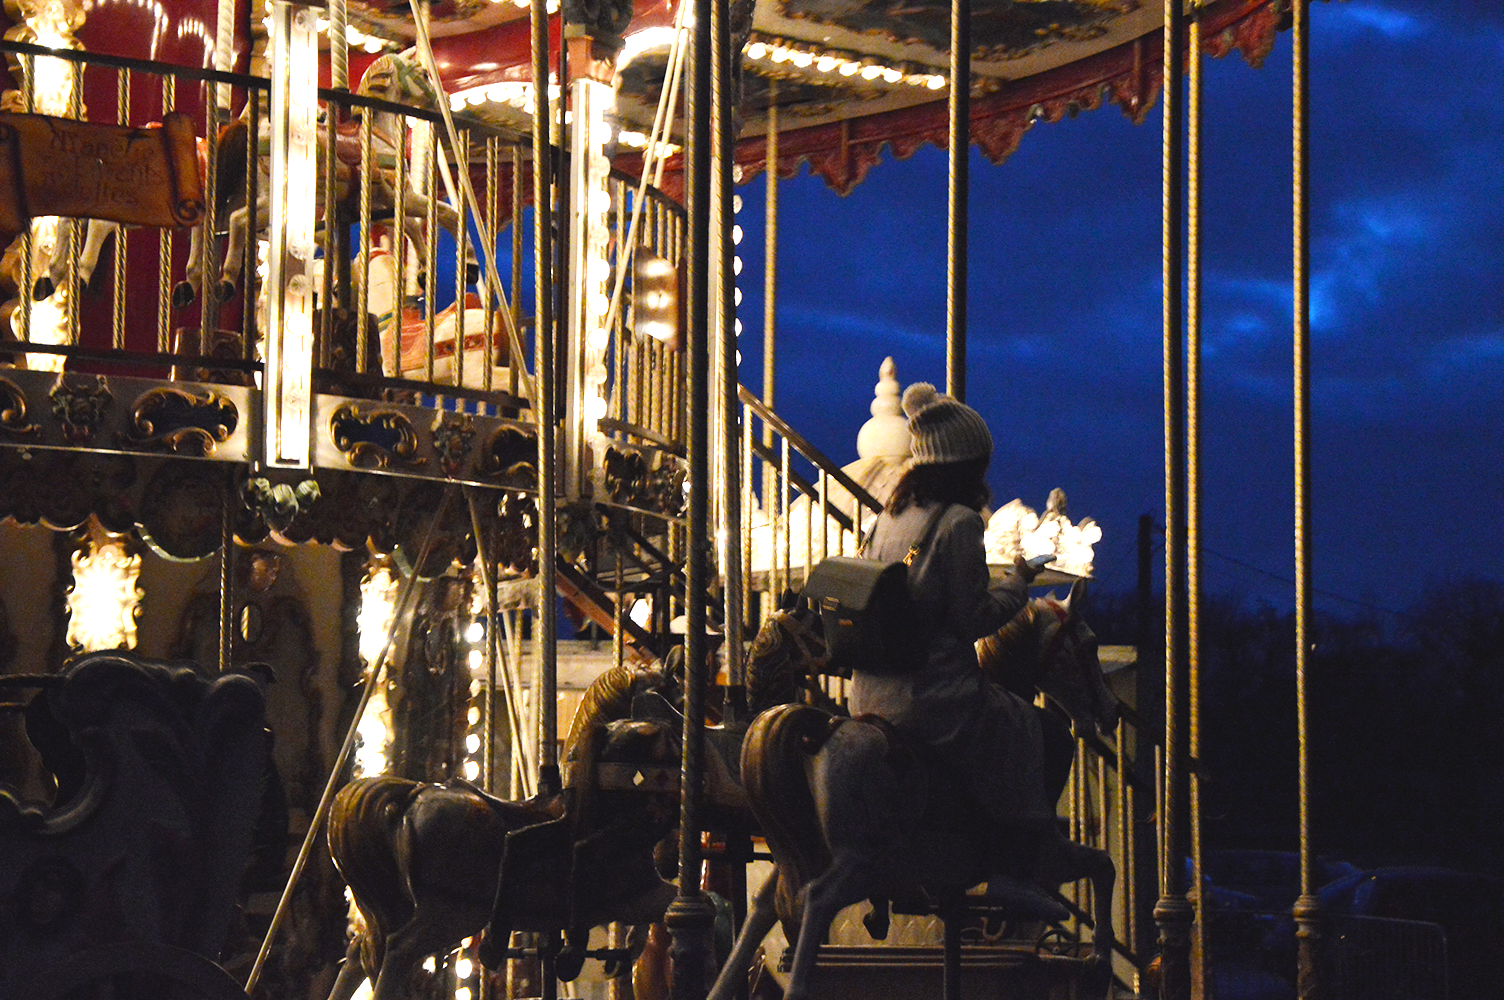 Carousel, Rambouillet, France, night photography, travel